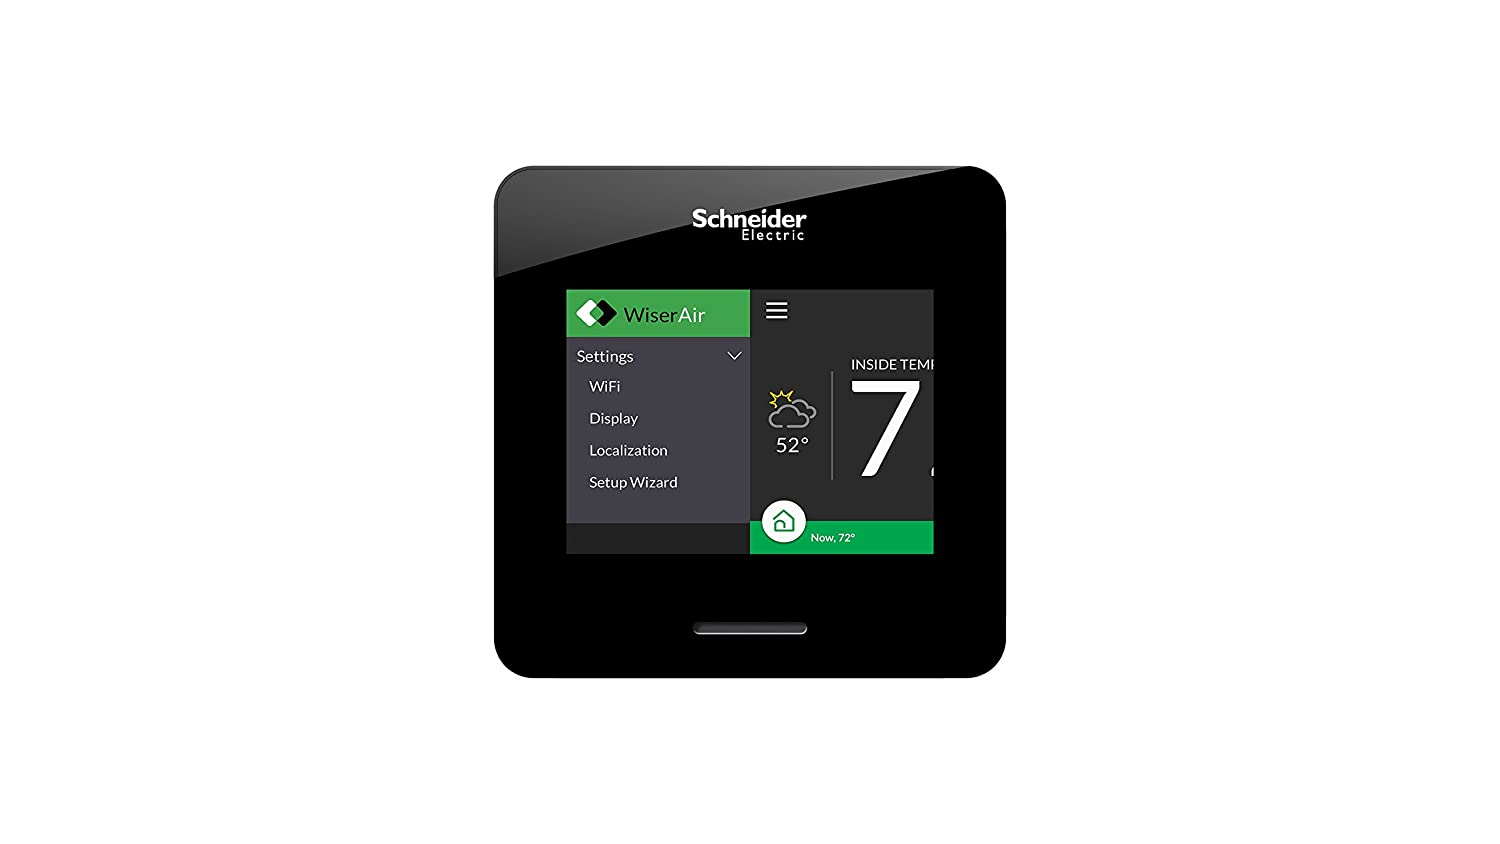 White Schneider Electric Wiser Air Wi-Fi Smart Thermostat with Comfort Boost Compatible with Alexa.